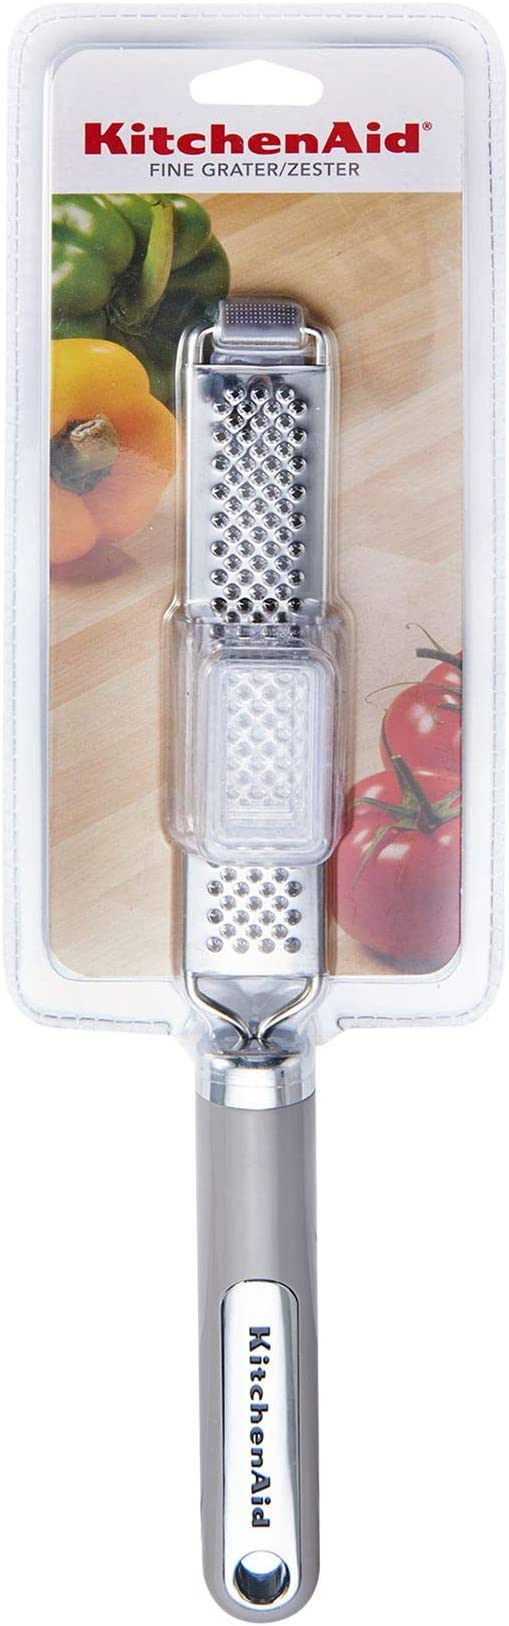 Kitchenaid Kc296ohgsa Classic Stainless Steel Zester Fine Grater One Size Storm Gray Amazon Ca Home Kitchen